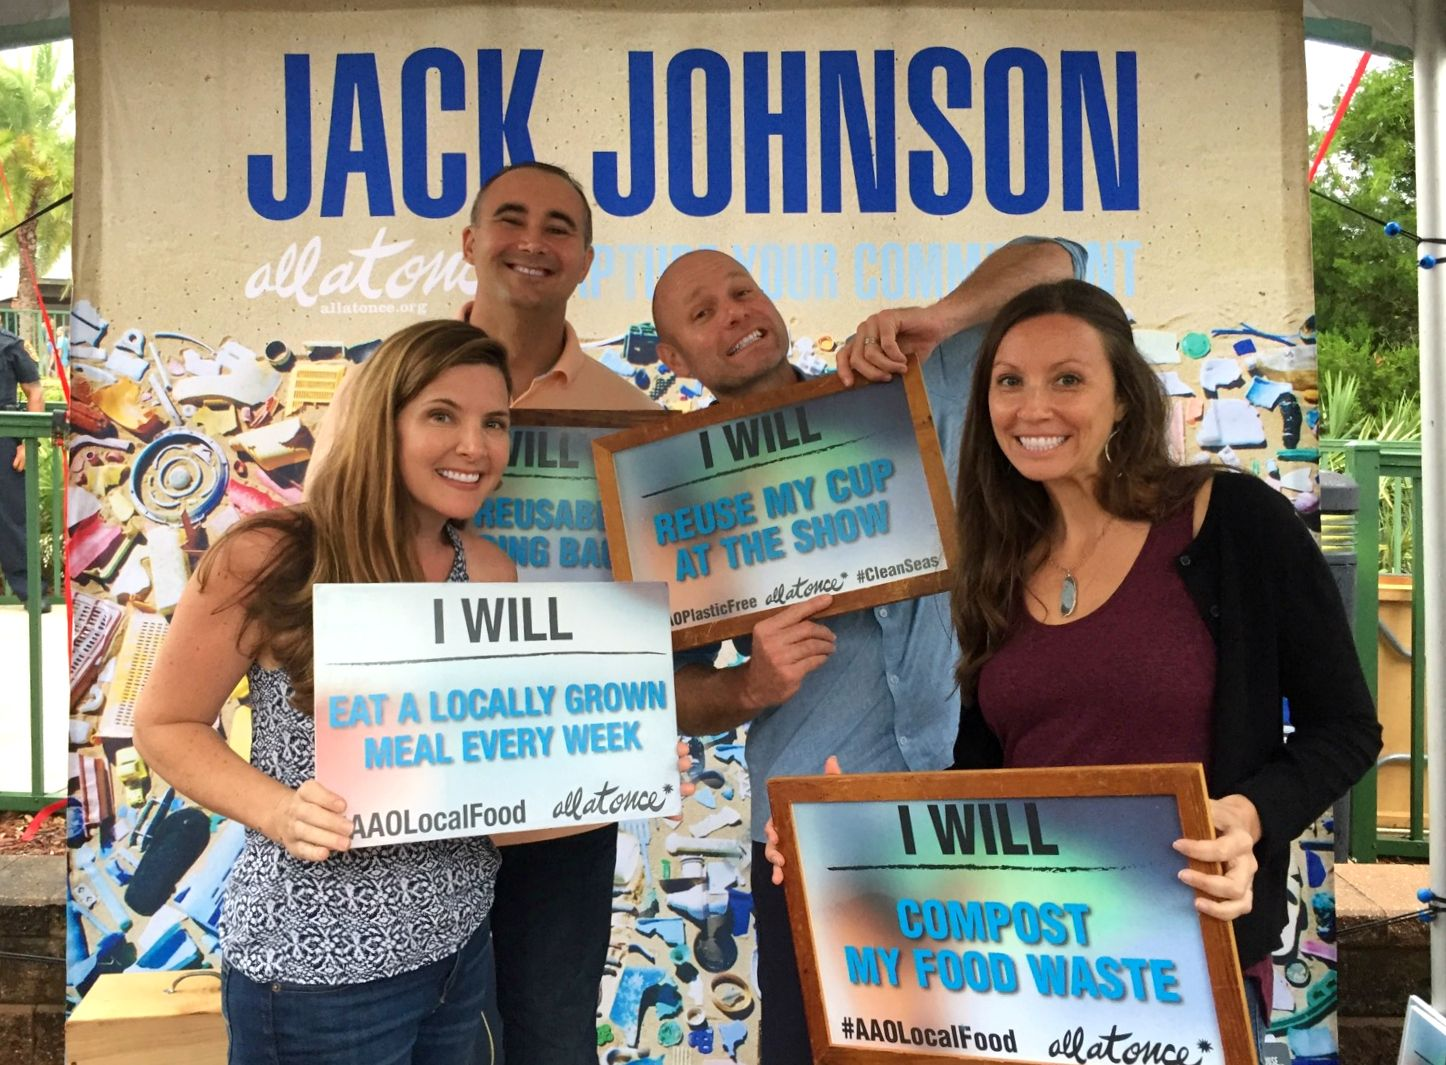 Green Spotlight Jack Johnson S All At Once Social Action